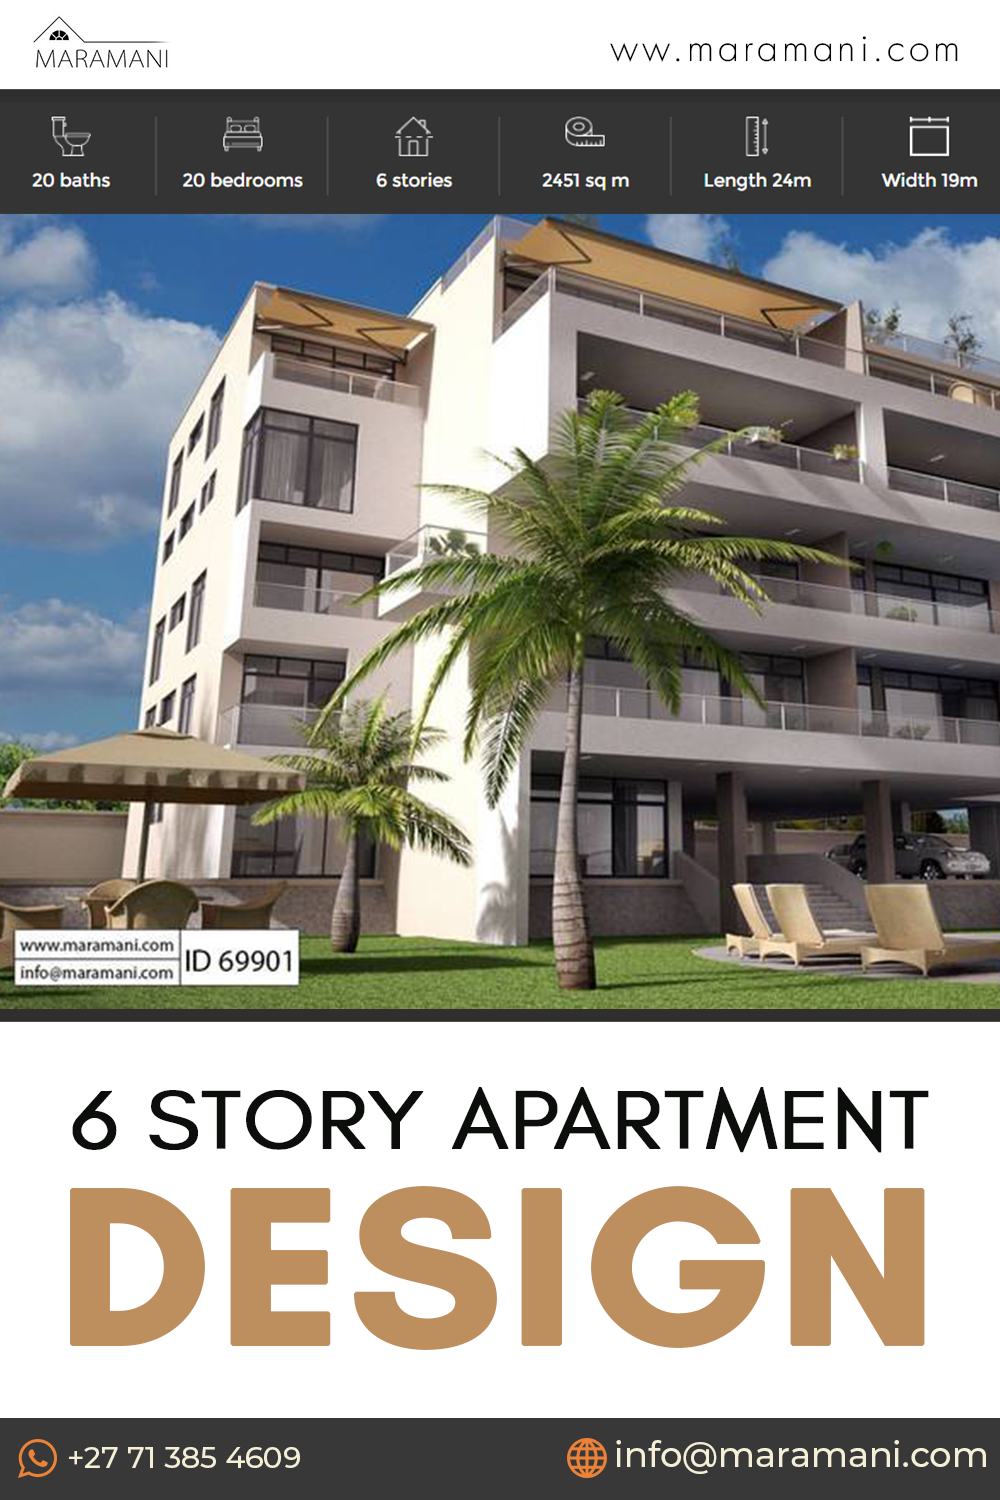 6 Story Apartment Design - ID 69901! Small house plans, dream house plans, tiny house plans, modern house plans, barn house plans, duplex house plans, ranch house plans, three bedroom house plan, 2 bedroom house plans, 2 bedroom 2 bath house plans, Future house plans, luxury house plans, simple house plans, two story house plans, beach house plans, pool house plans, 3d house plans. #smallhouseplans #dreamhouseplans #modernhouseplans #luxuryhouseplans #simplehouseplans